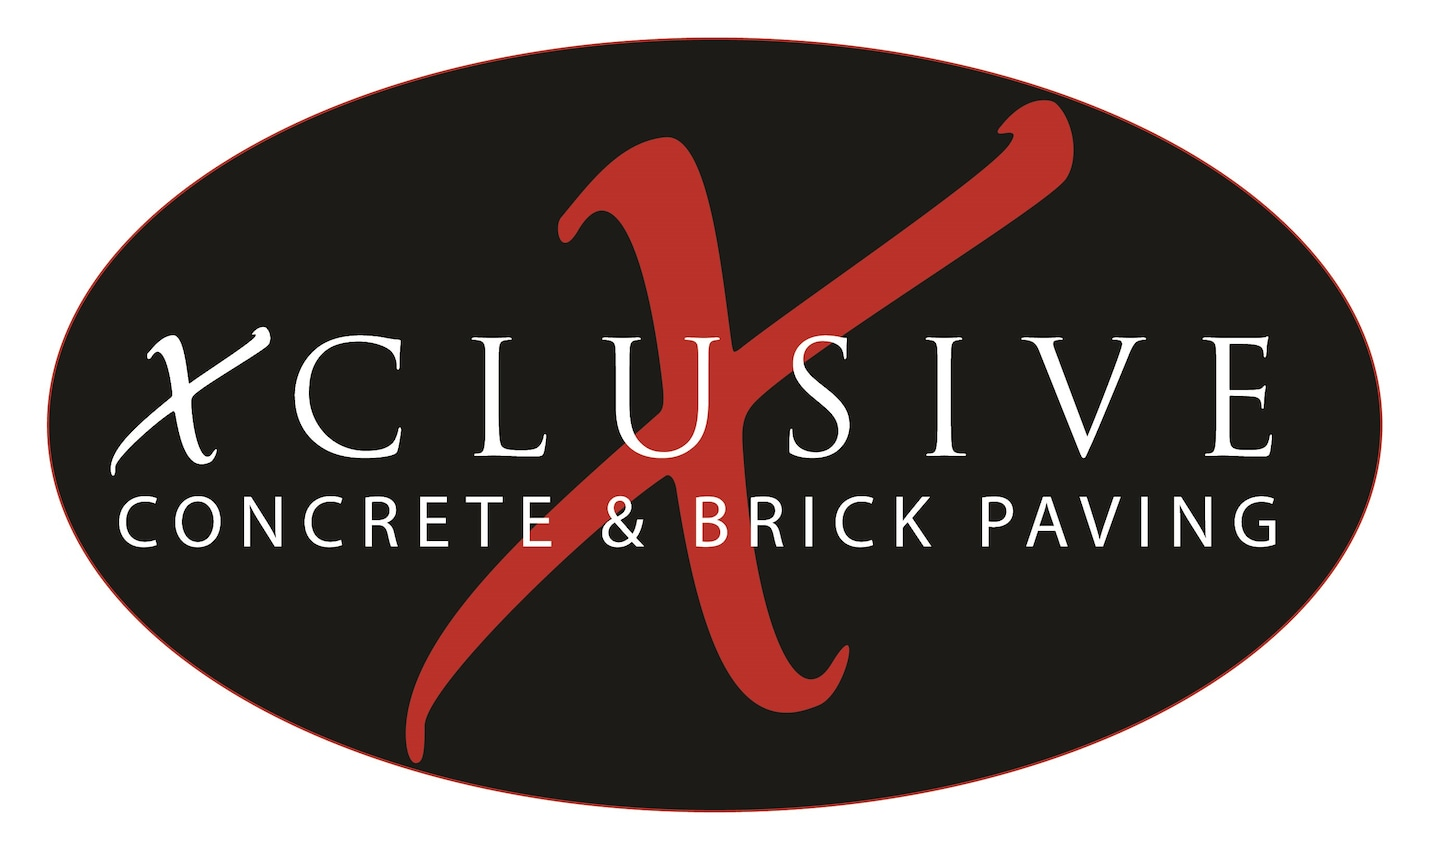 Xclusive Concrete & Brick Paving